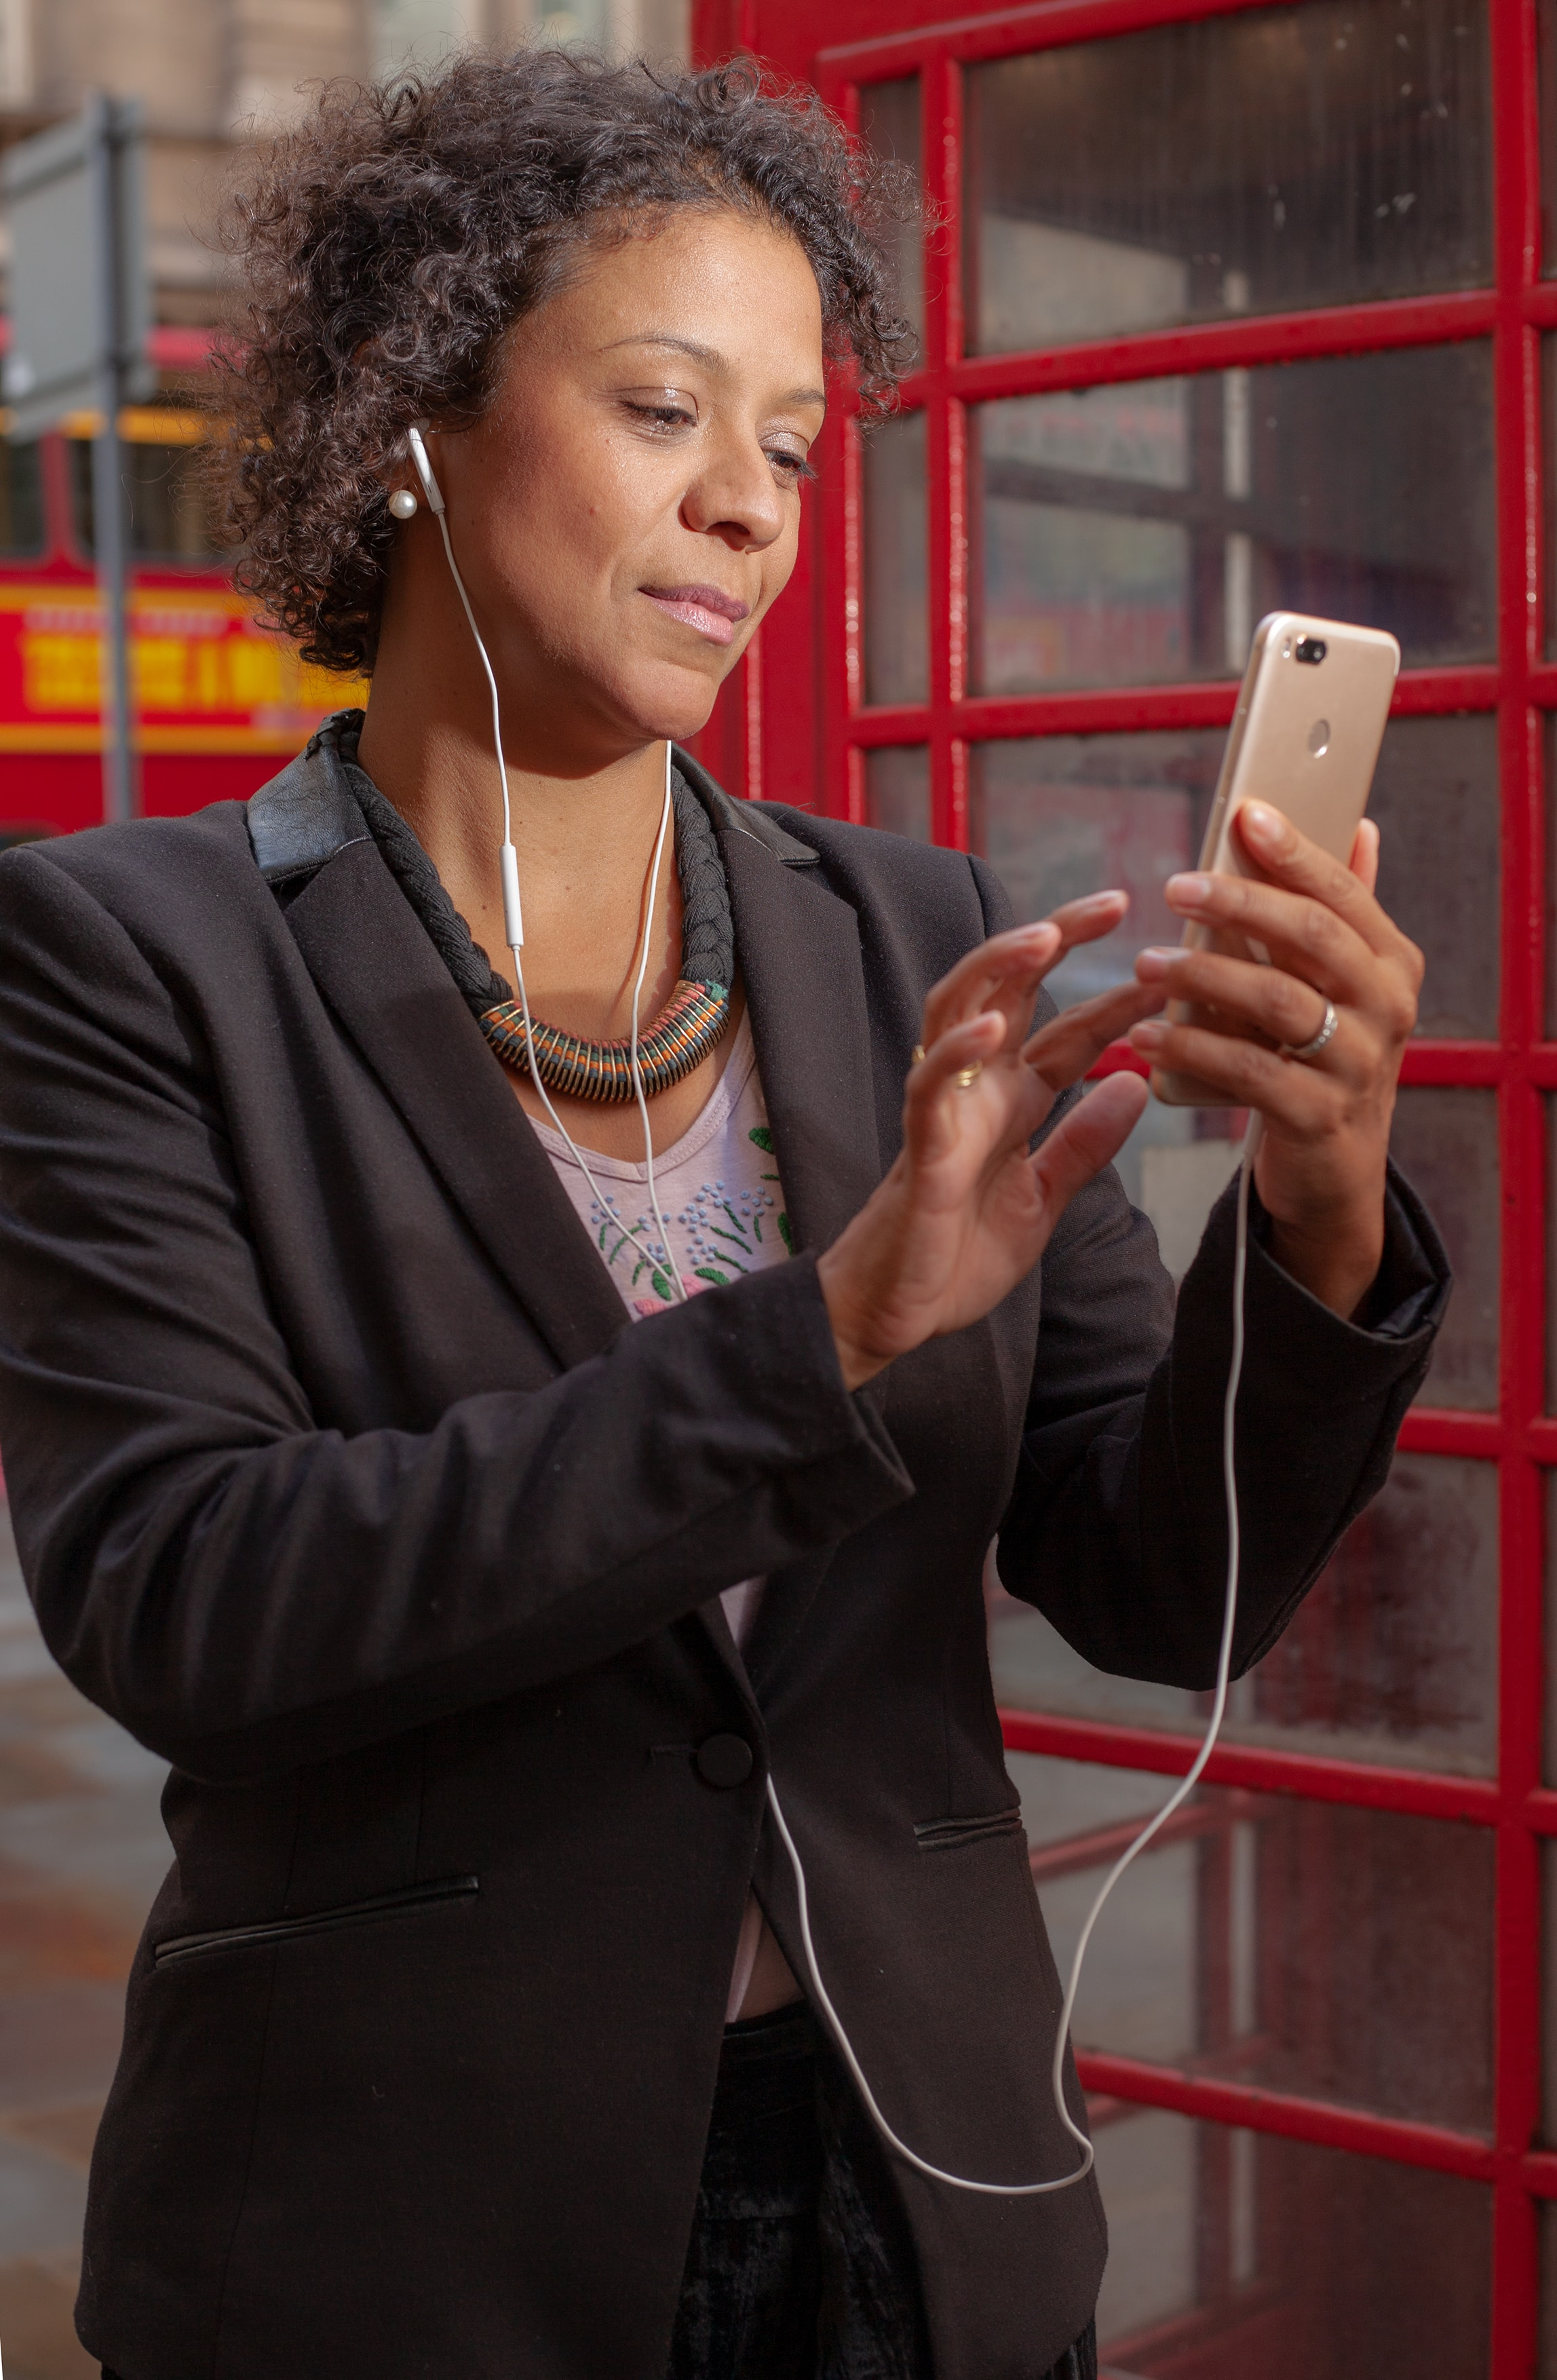 woman wearing earbuds while holding smartphone